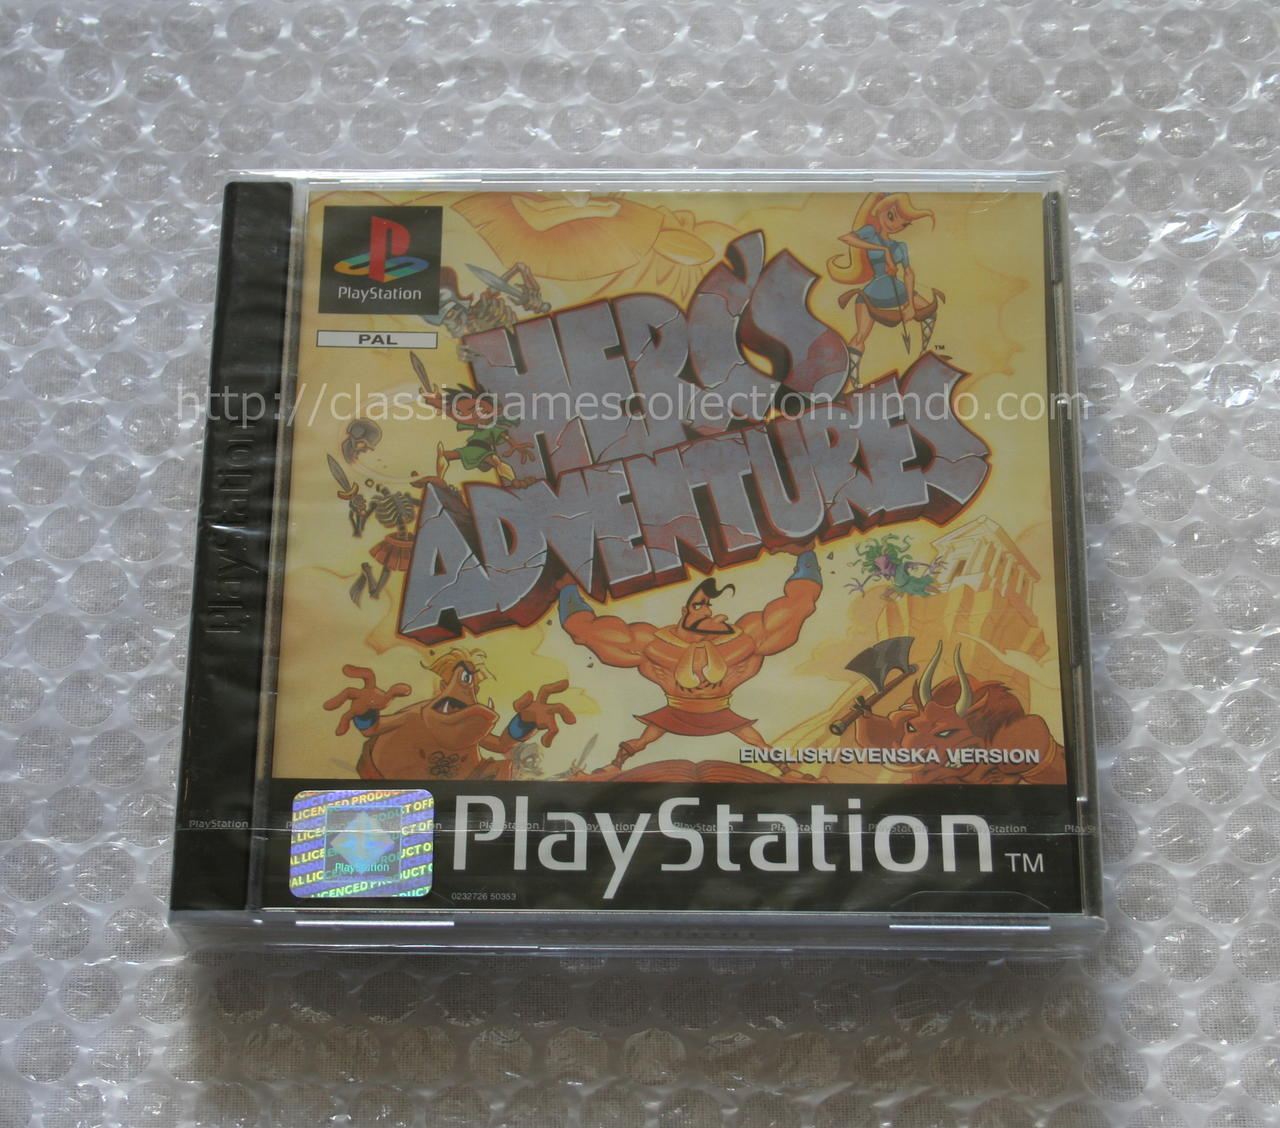 Playstation] Herc's Adventures (PAL) New & Sealed